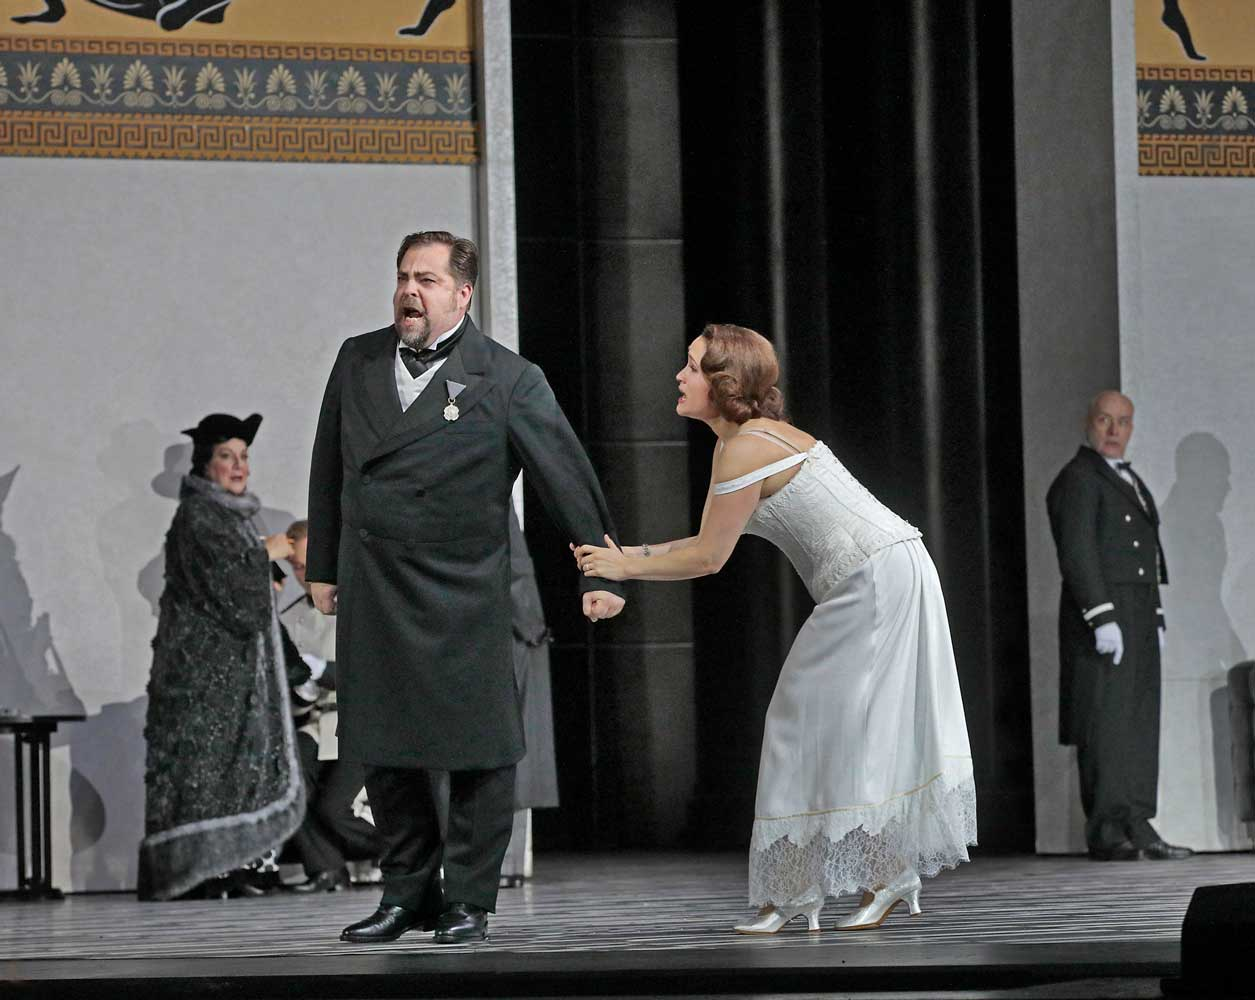 ROSE_3706b Marcus Brück as Faninal and Erin Morley as Sophie in Strauss's Der Rosenkavalier. Photo by Ken Howard/Metropolitan Opera.